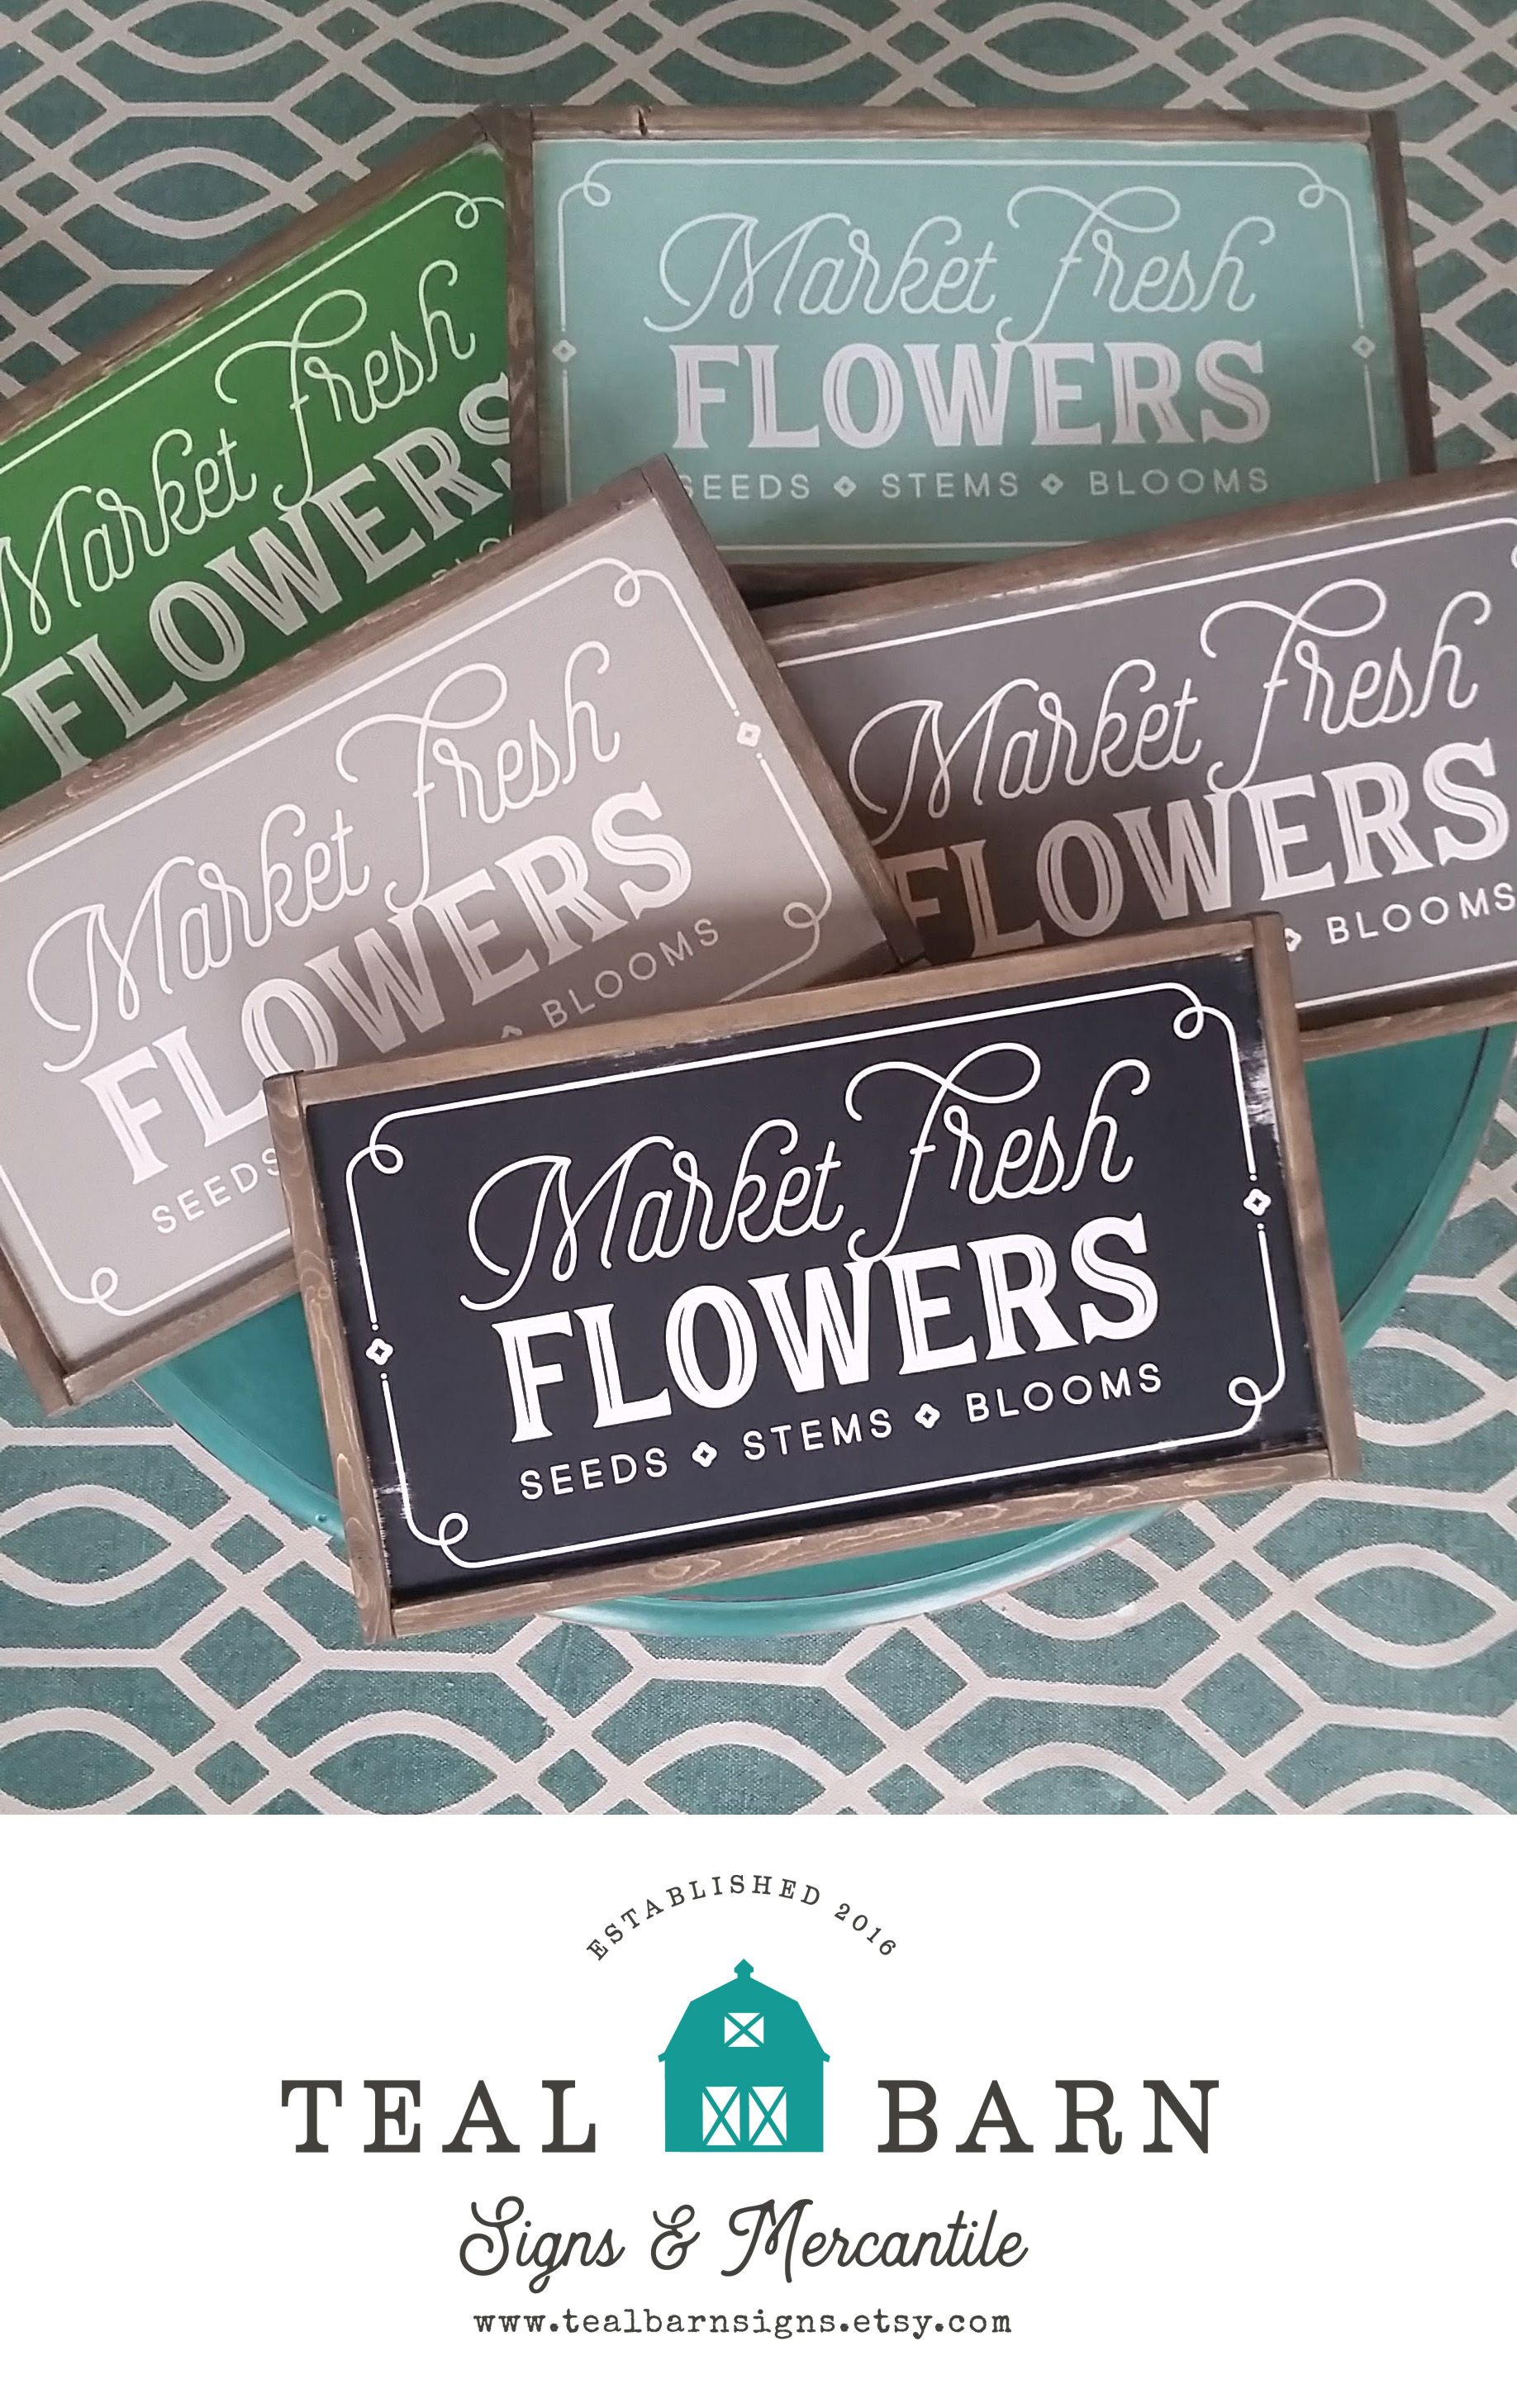 Memorial Day Sale 20 Off Farmhouse Style Market Fresh Flowers Handcrafted Wood Sign Available I Fresh Flower Market Flower Market Magnolia Market Fixer Upper